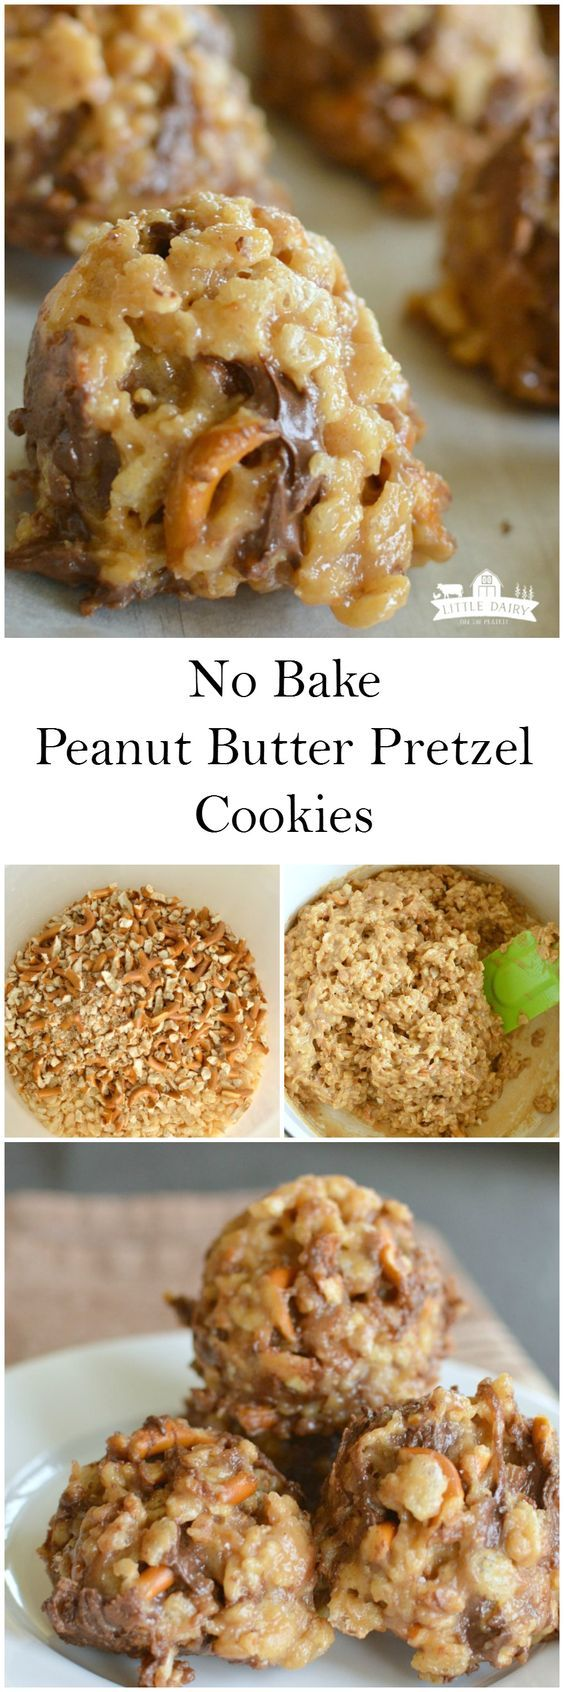 No Bake Peanut Butter Pretzel Cookies | Recipe